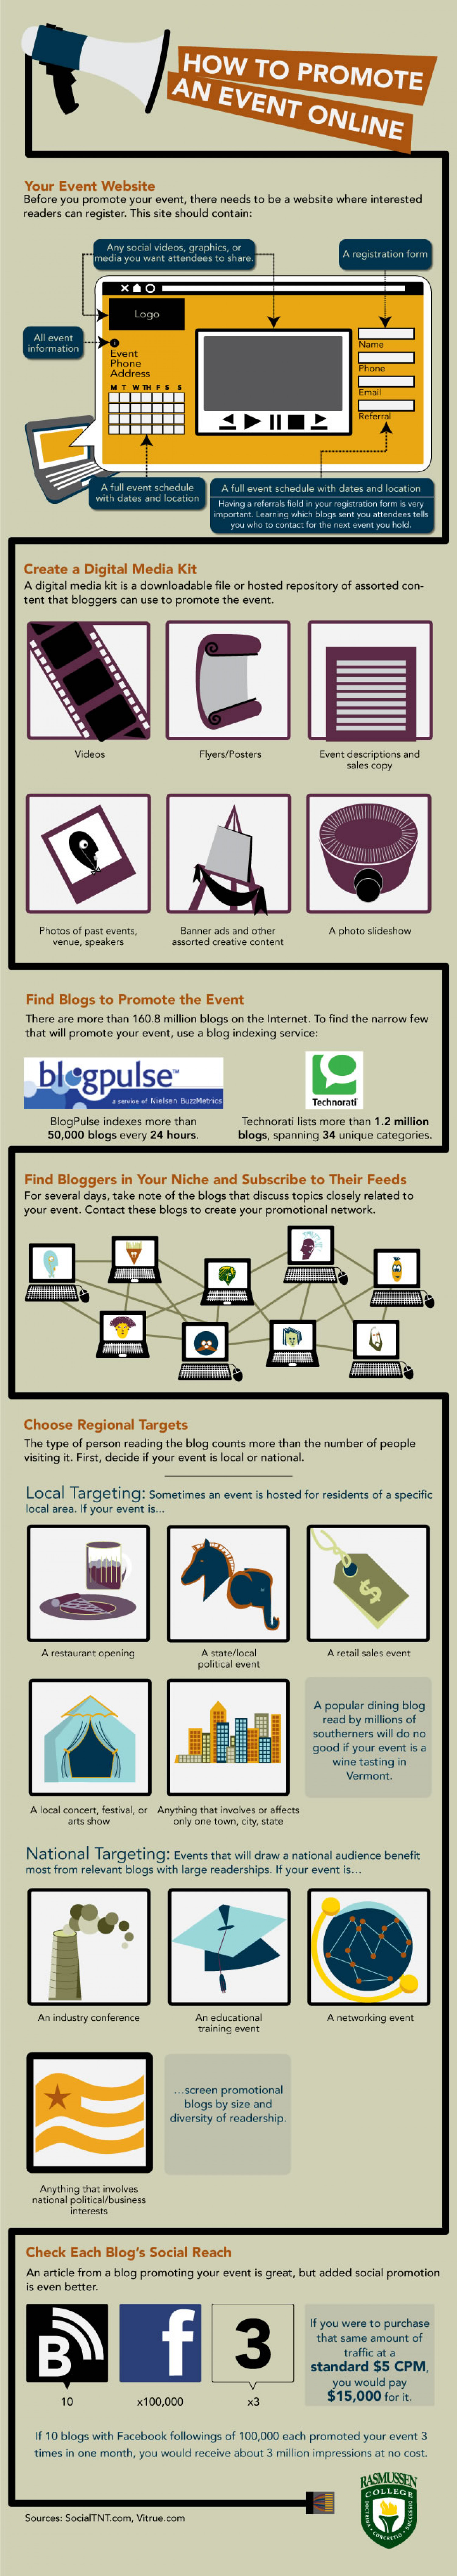 How to Promote an Event Online Infographic